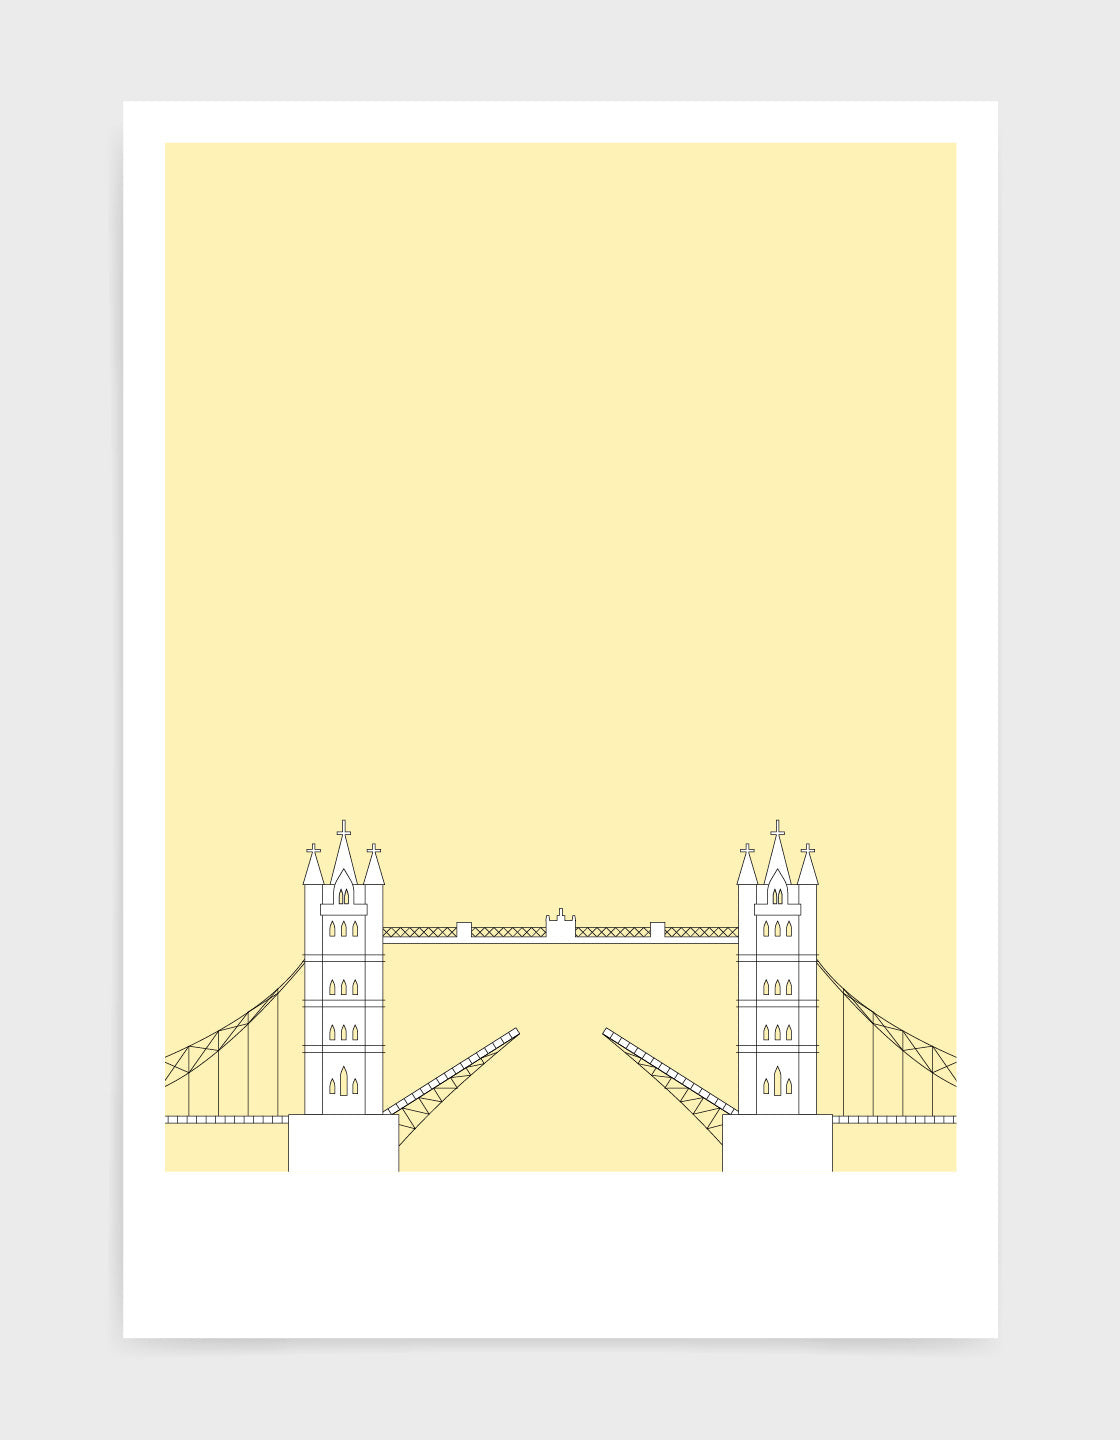 illustration of tower bridge in white against a light yellow background